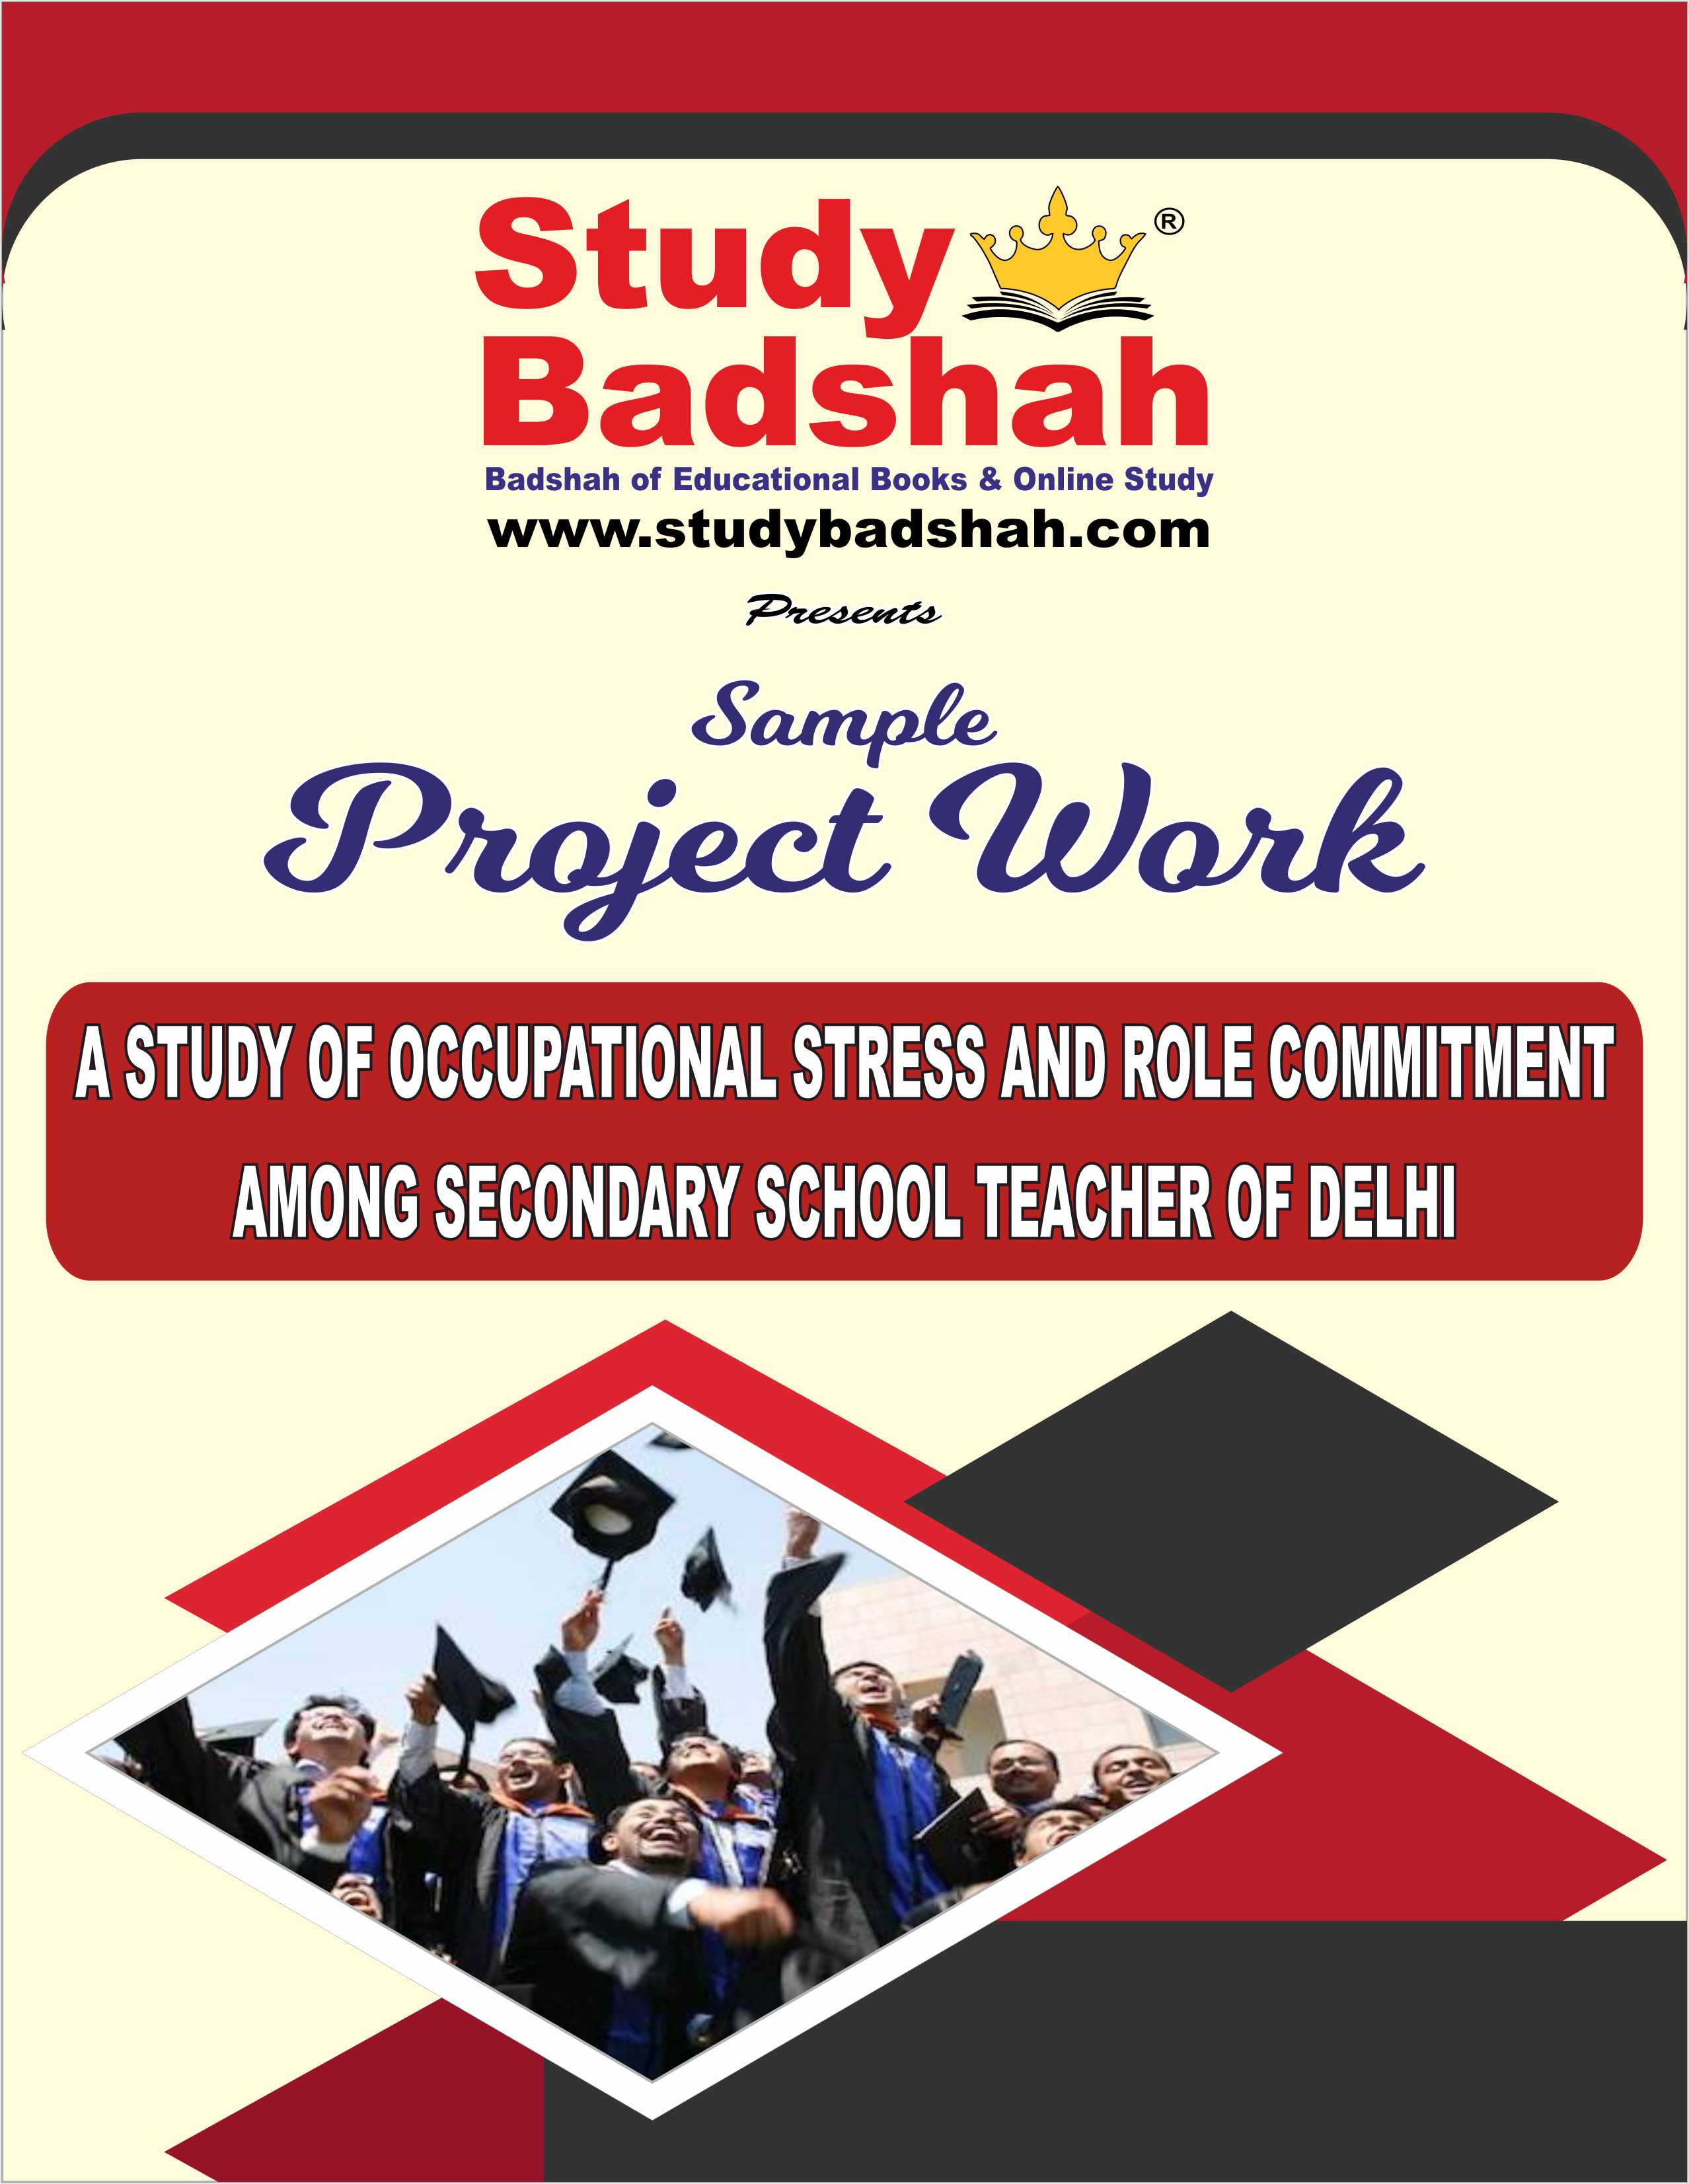 A STUDY OF OCCUPATIONAL STRESS AND ROLE COMMITMENT AMONG SECONDARY SCHOOL TEACHER OF DELHI